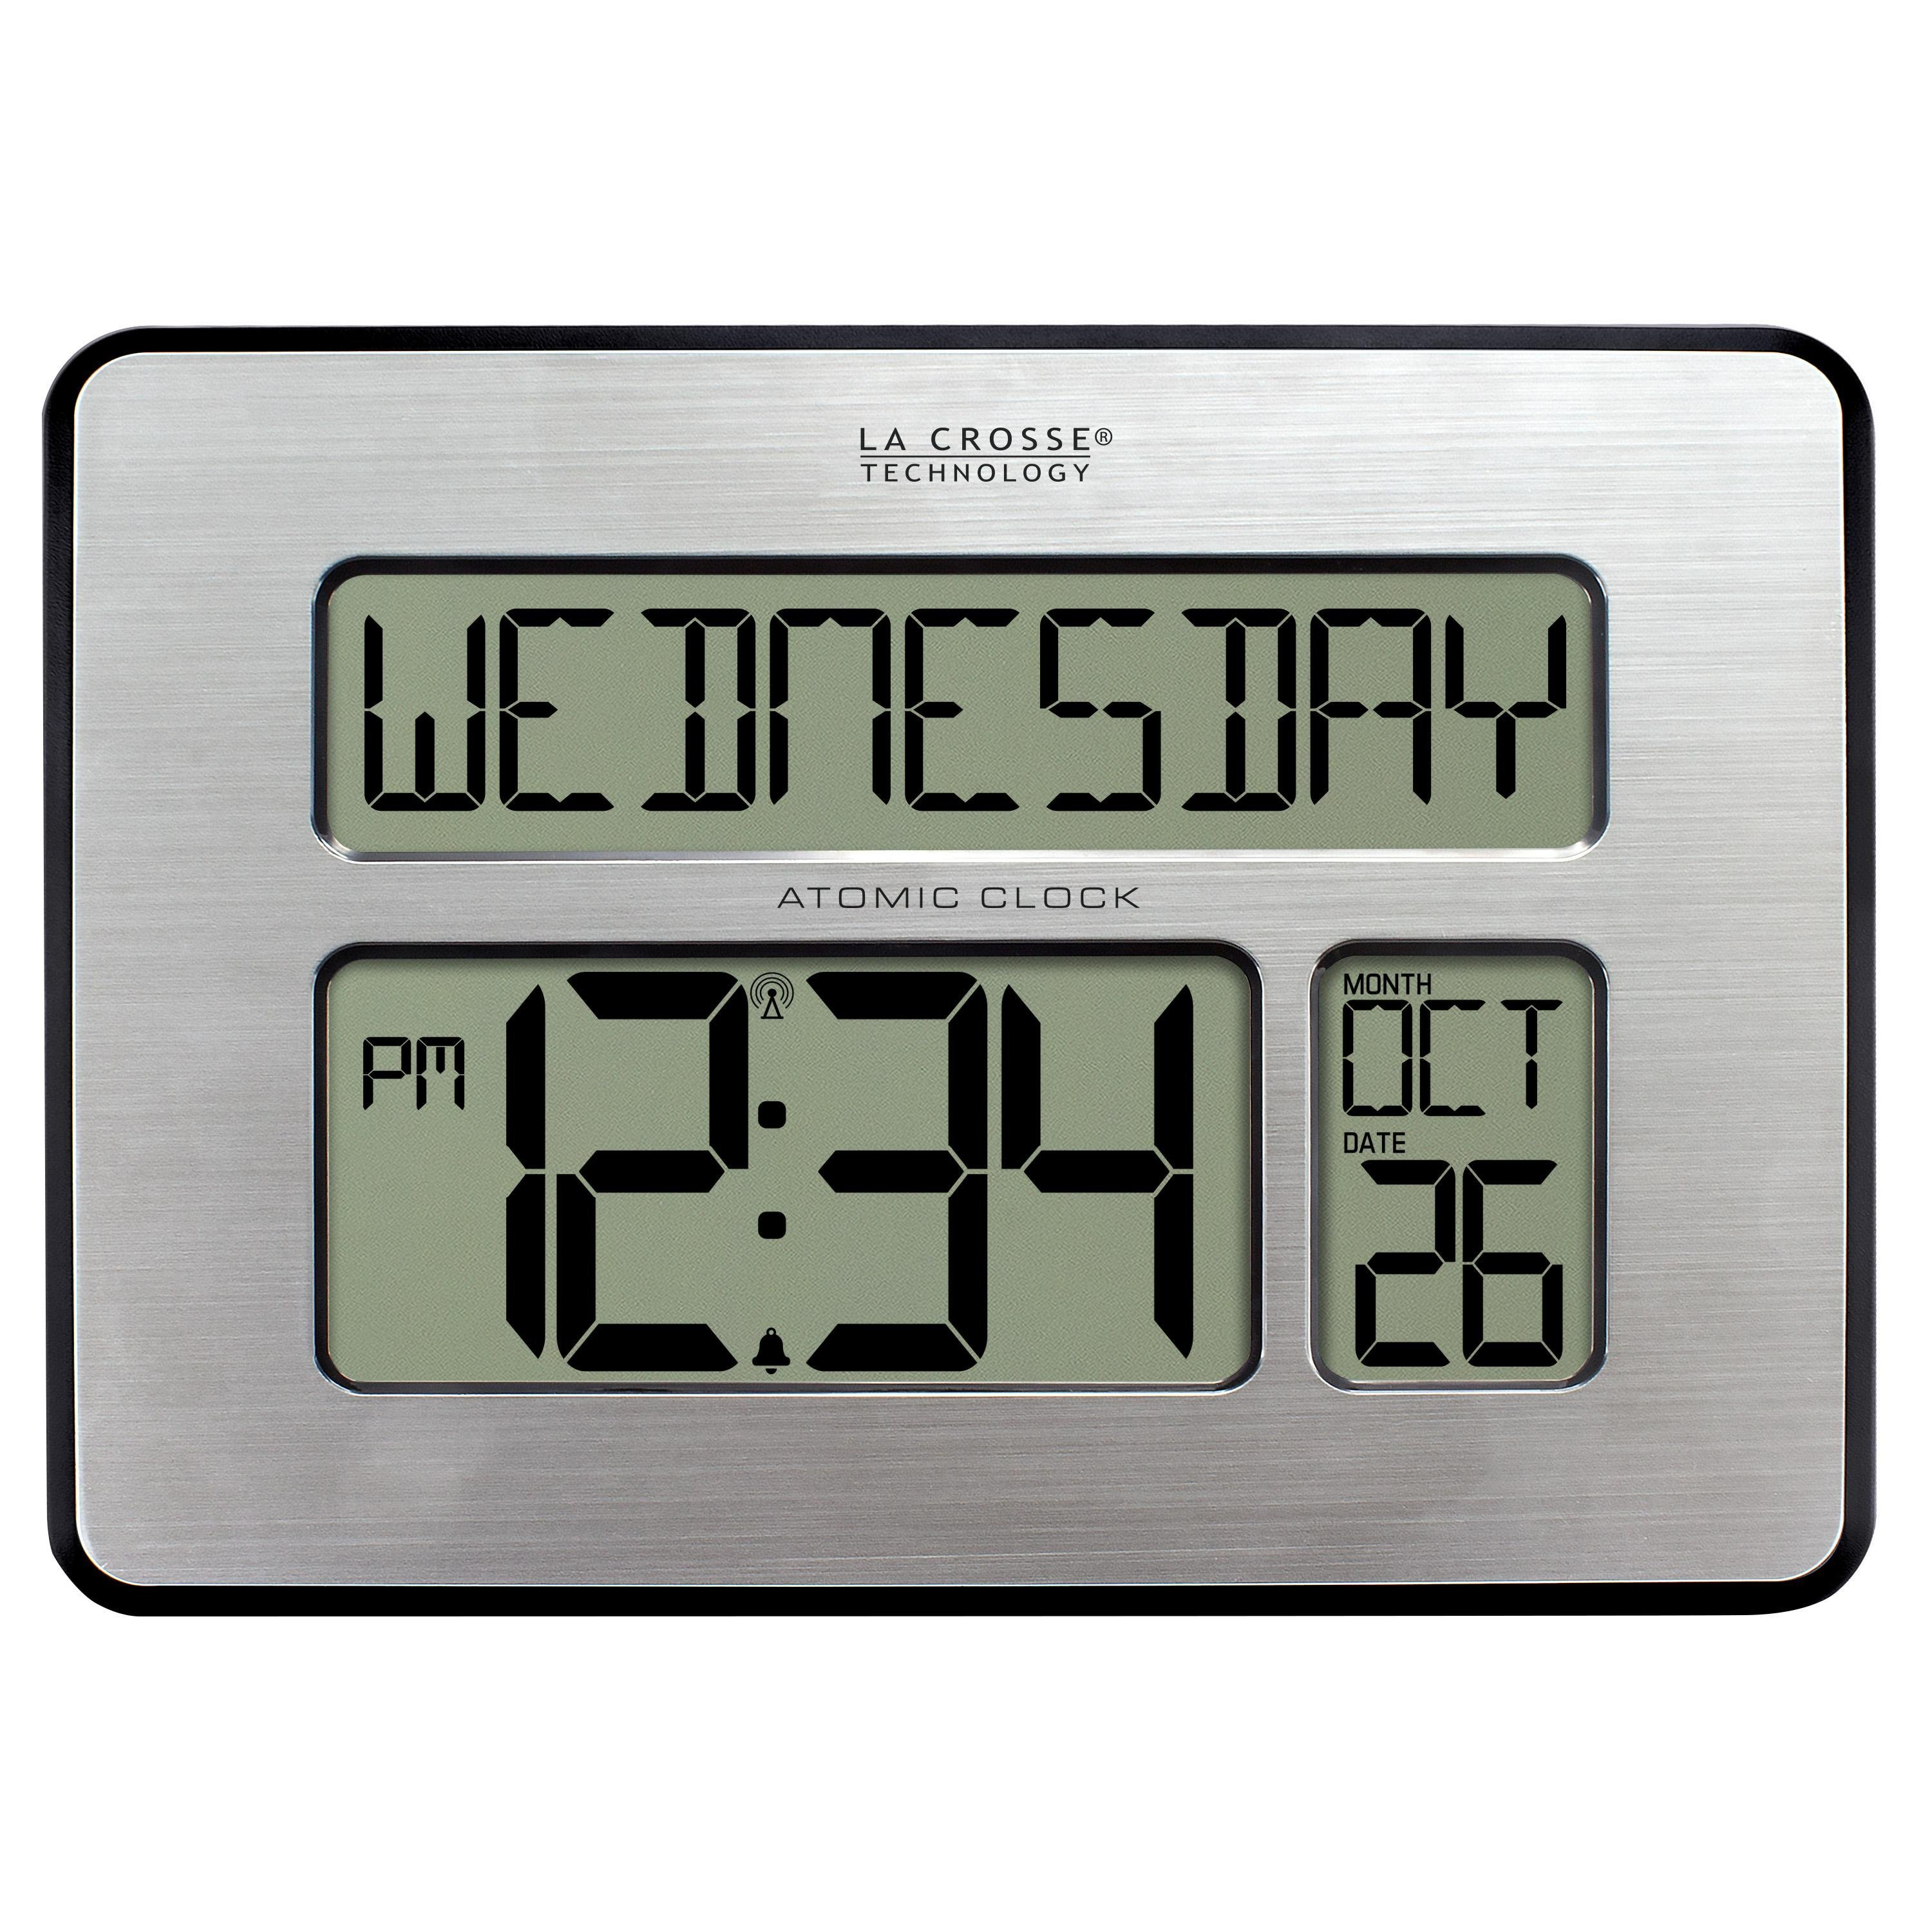 La crosse technology 513 1419 int atomic full calendar clock with extra large digits - Extra large digital wall clock ...